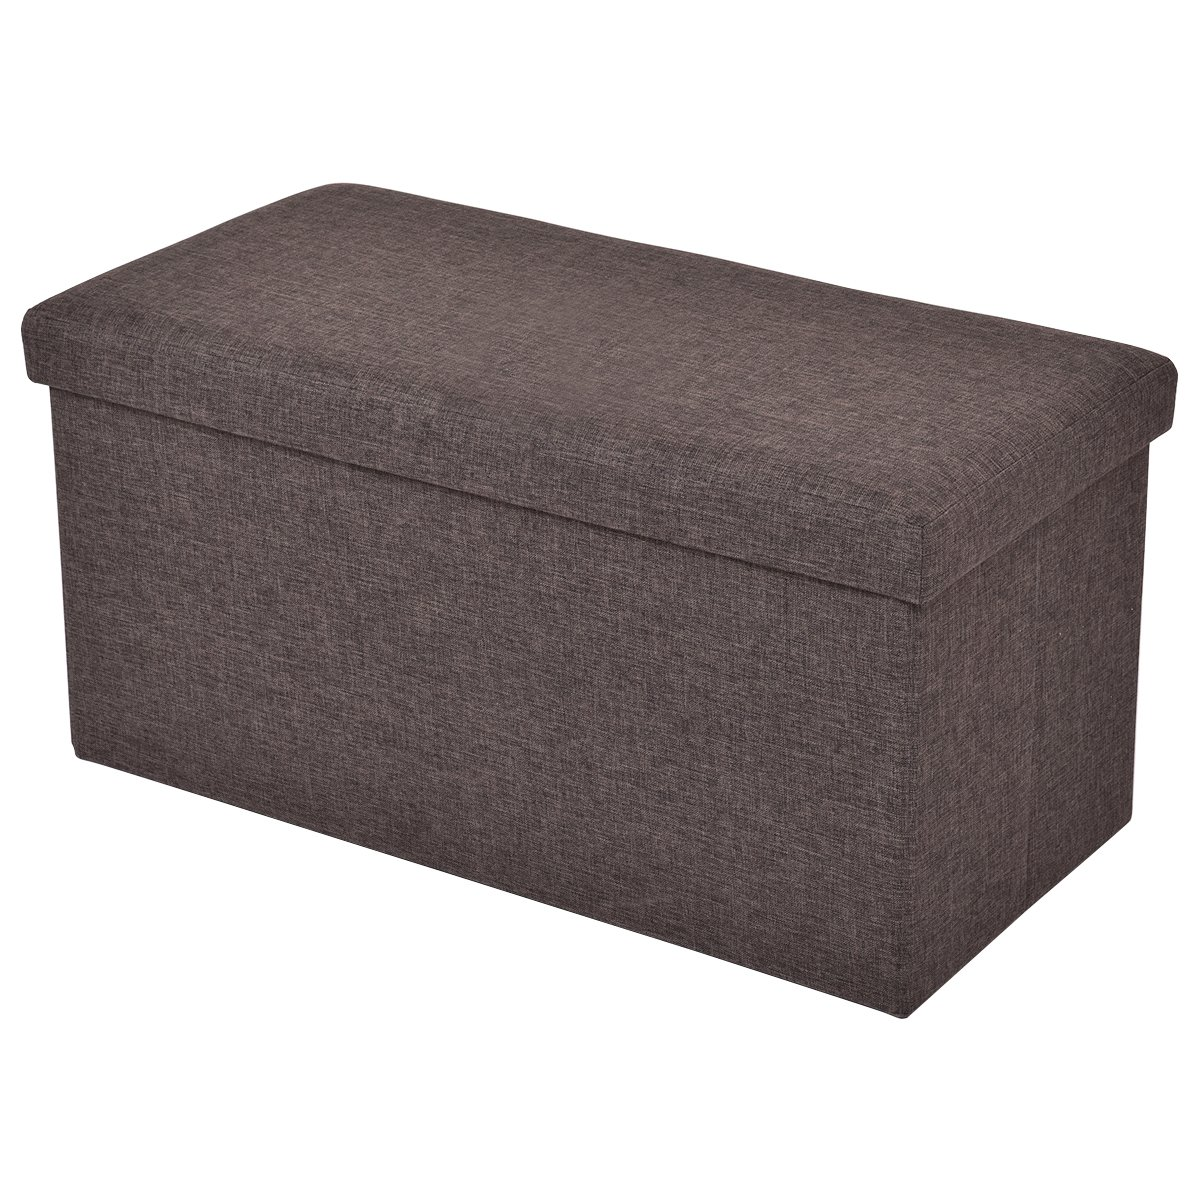 CASART Ottoman Double Seater - 2 Seat Bench, Foldable Stool Box, Folding Storage Pouffe, Footstool with Fabric Materials and Removable Lid for Space-saving (Grey)